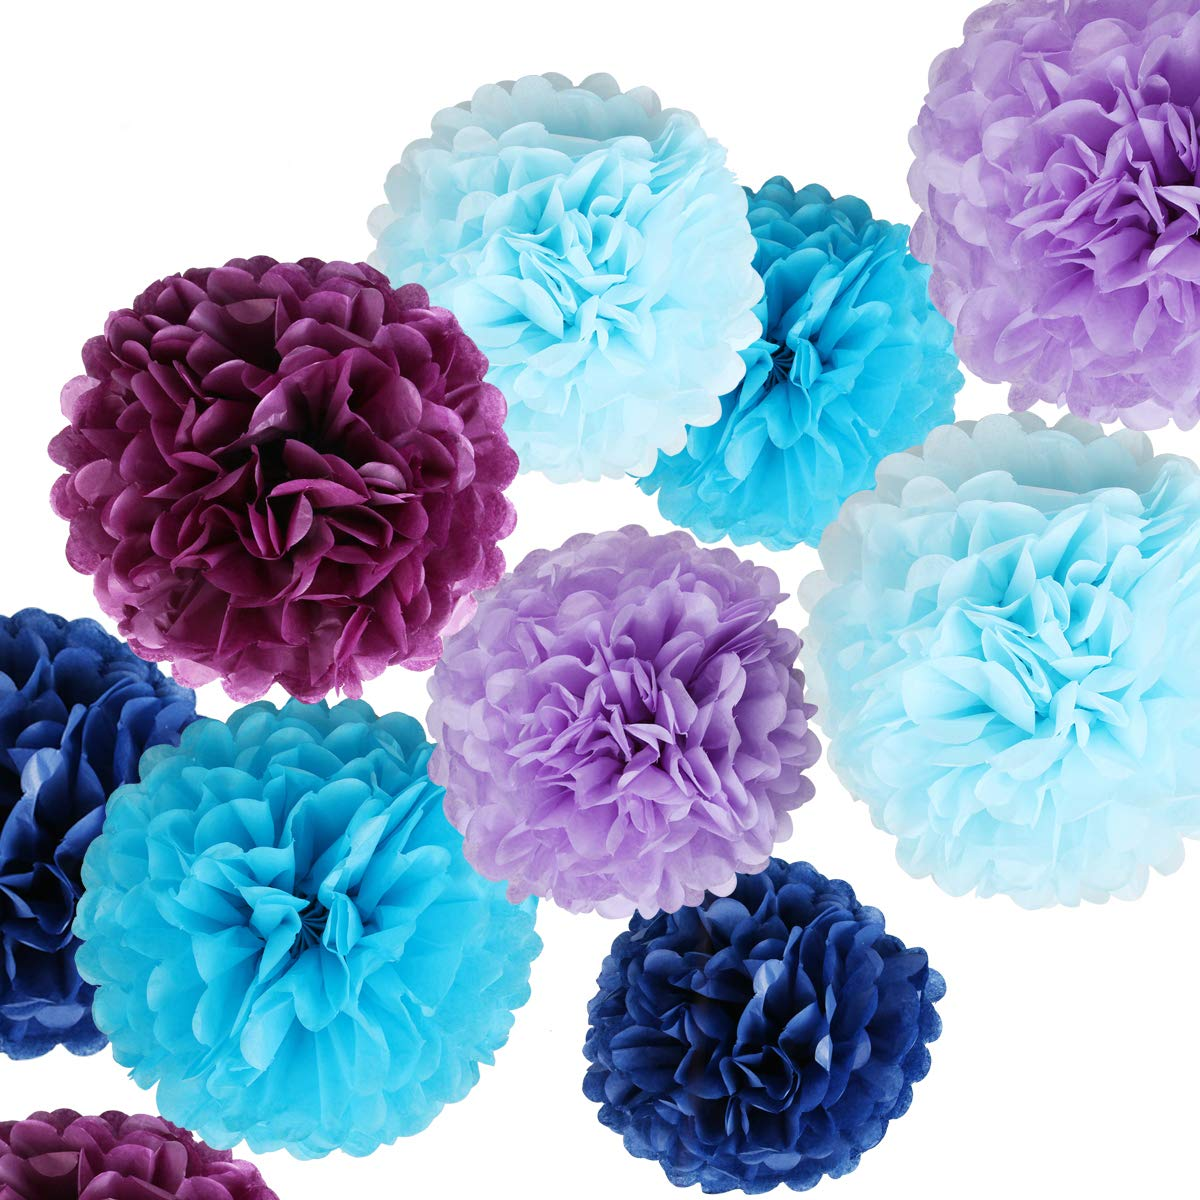 Paper Flowers - Fluffy Tissue Paper Pom Poms - Hanging Flower Ball for Baby Shower Decorations, Wedding Decor, Birthday Party Celebration - 25 Pcs SQB 4336867203